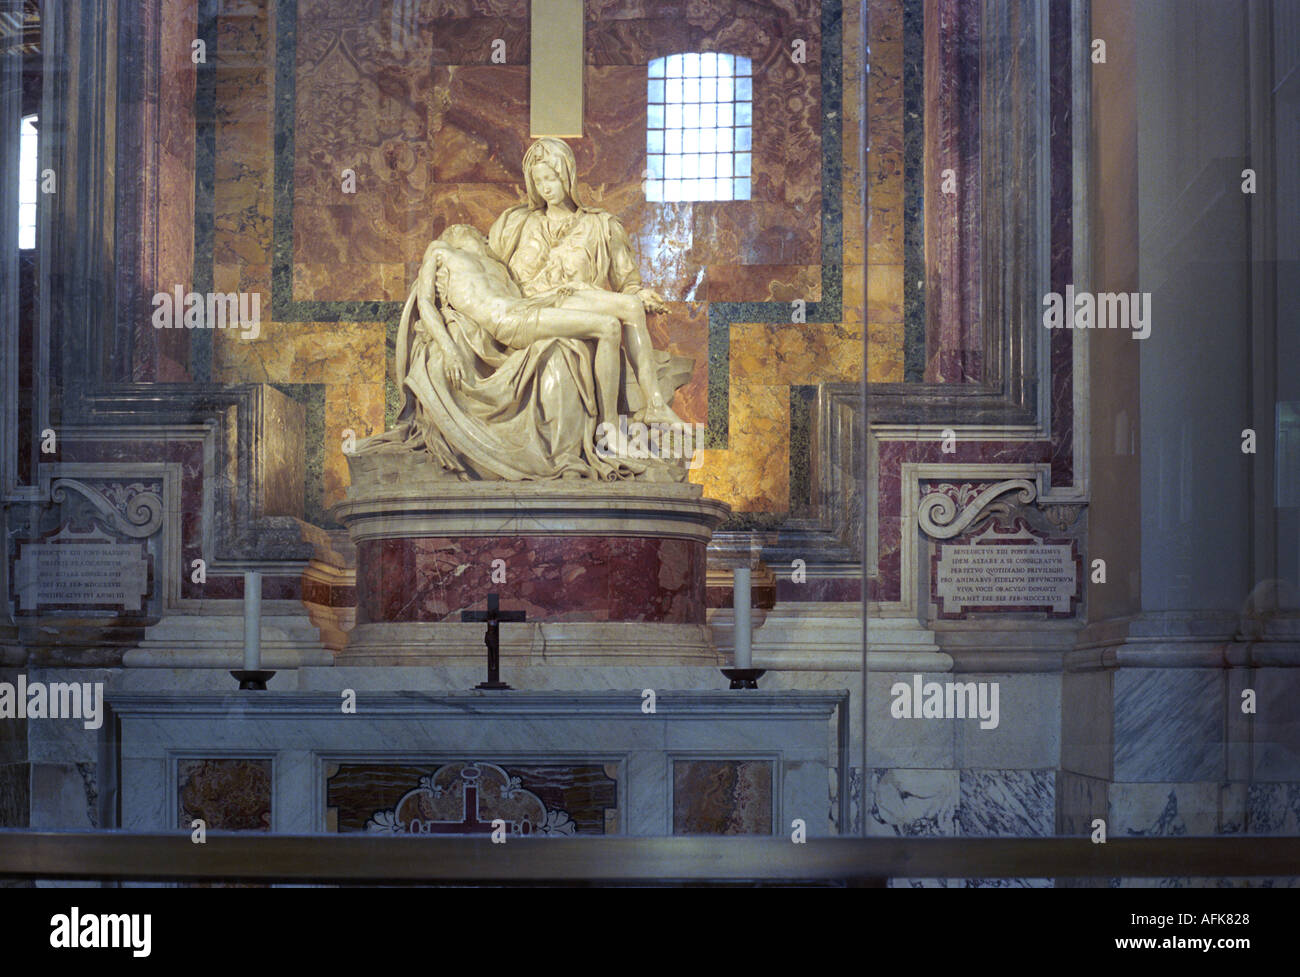 The Pieta by Michelangelo on display in Saint Peter s Basilica in the Vatican City in Rome - Stock Image